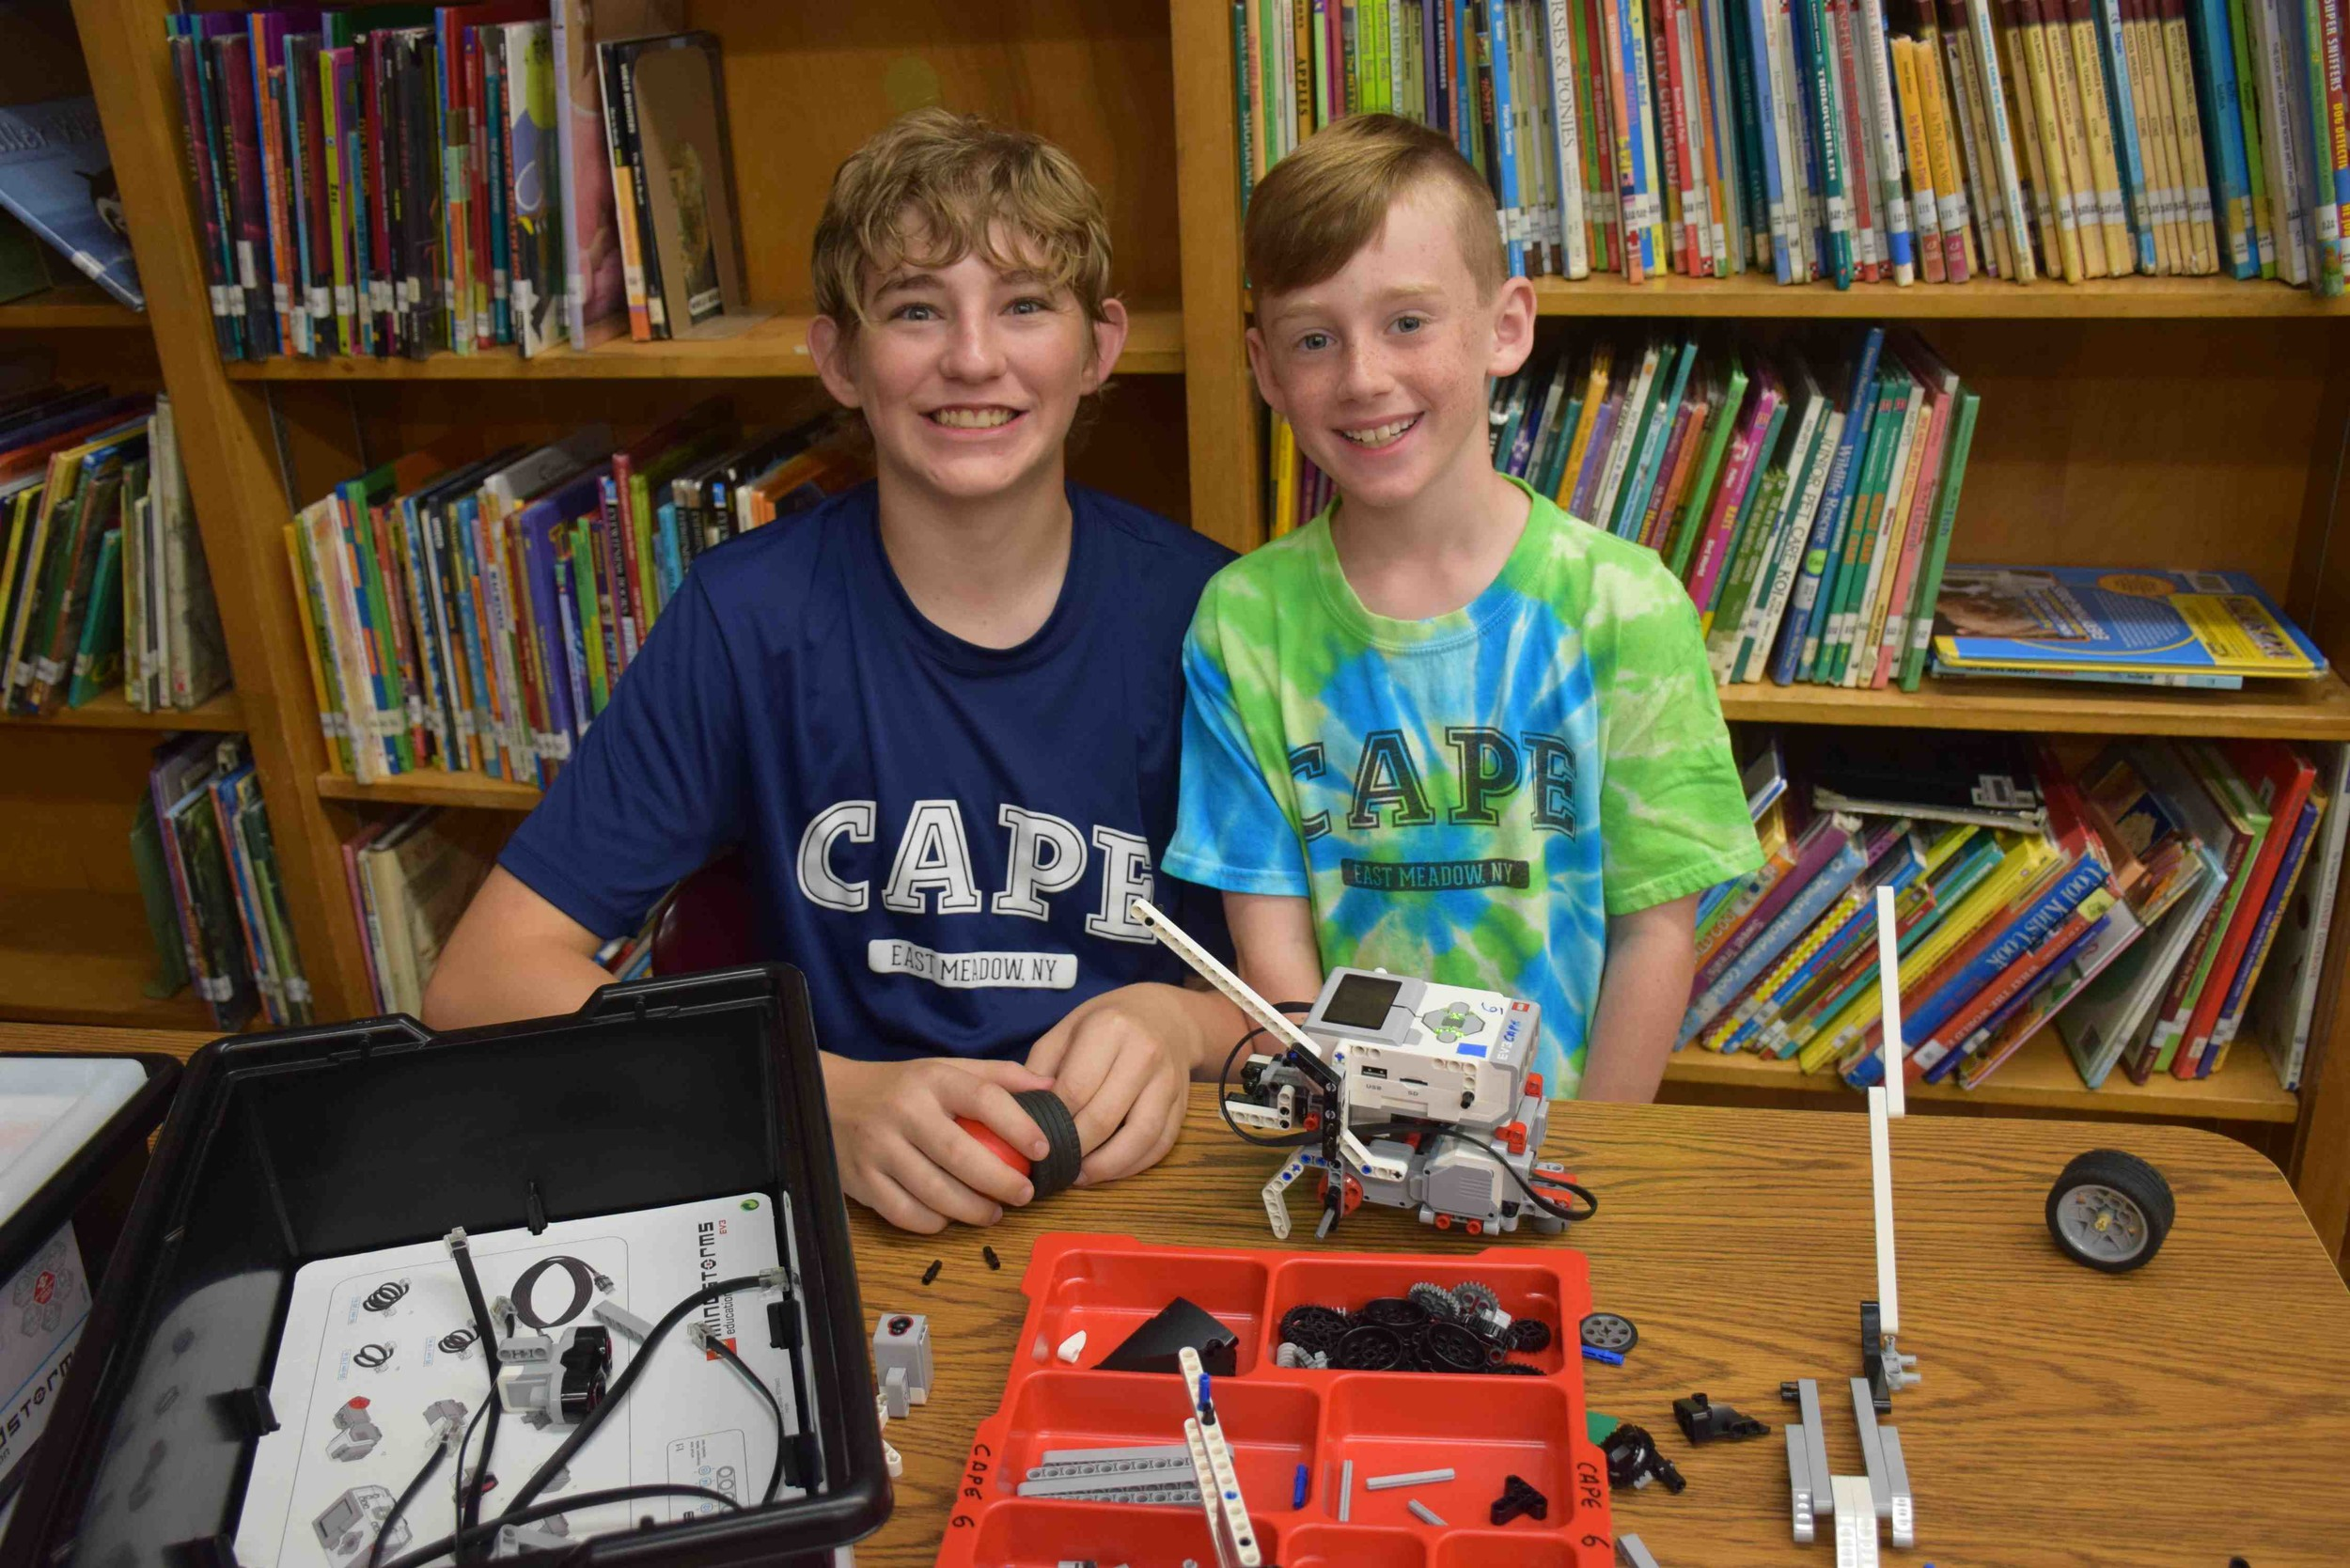 Maverick Kandel (left), a counselor with the Creative Arts Program of East Meadow and sophomore at W.T. Clarke High School, helped McVey Elementary School fourth-grader Thomas Primrose assemble a robot during a robotics class.